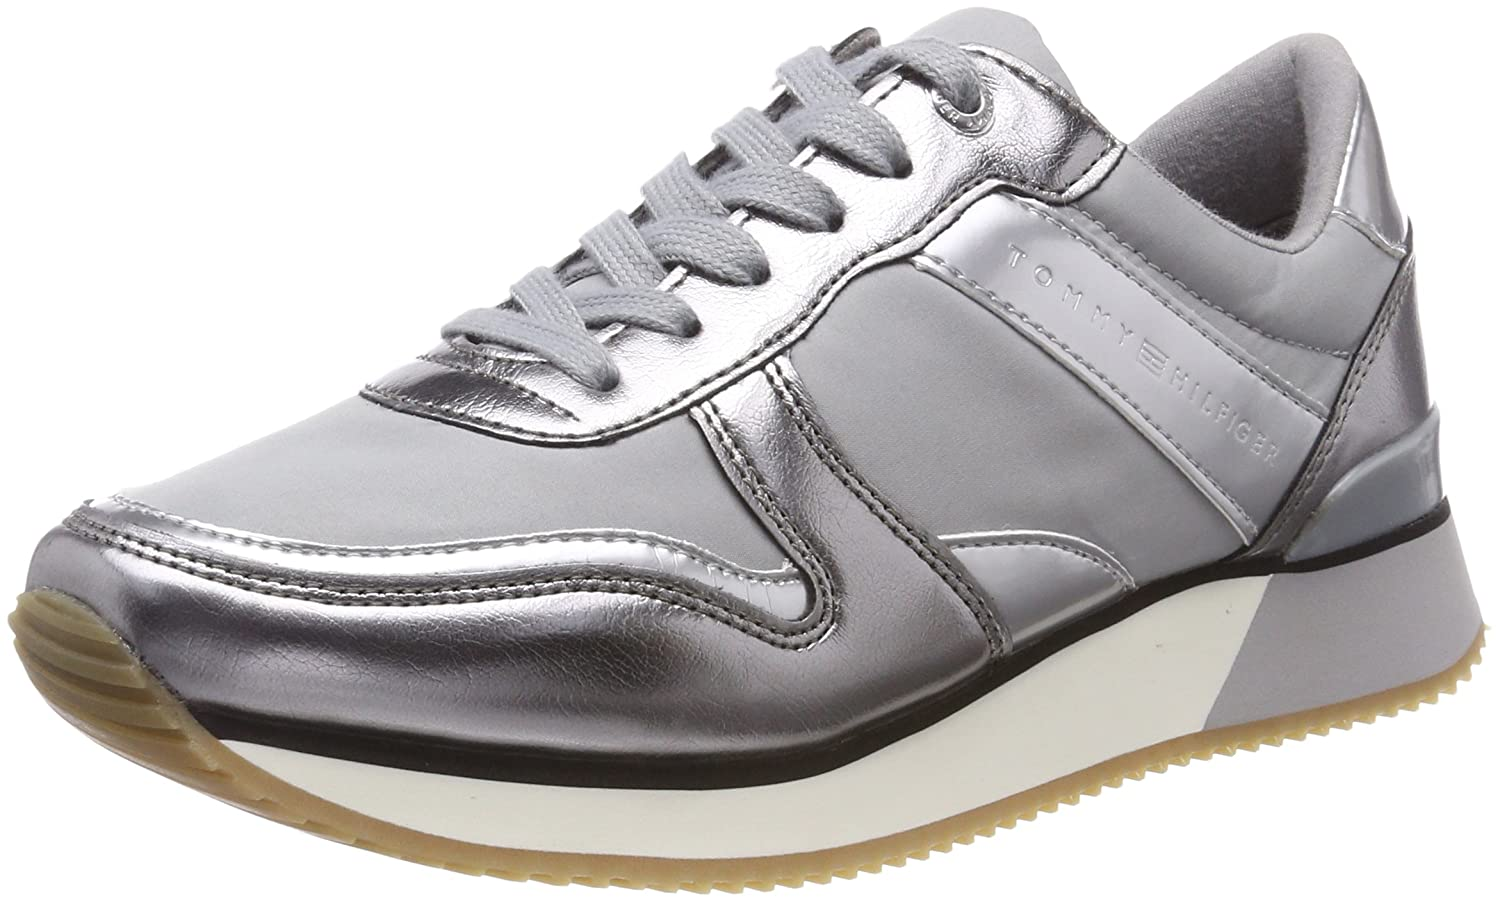 Tommy Hilfiger Damen Metallic Sneaker Grau (Light Grau 004)